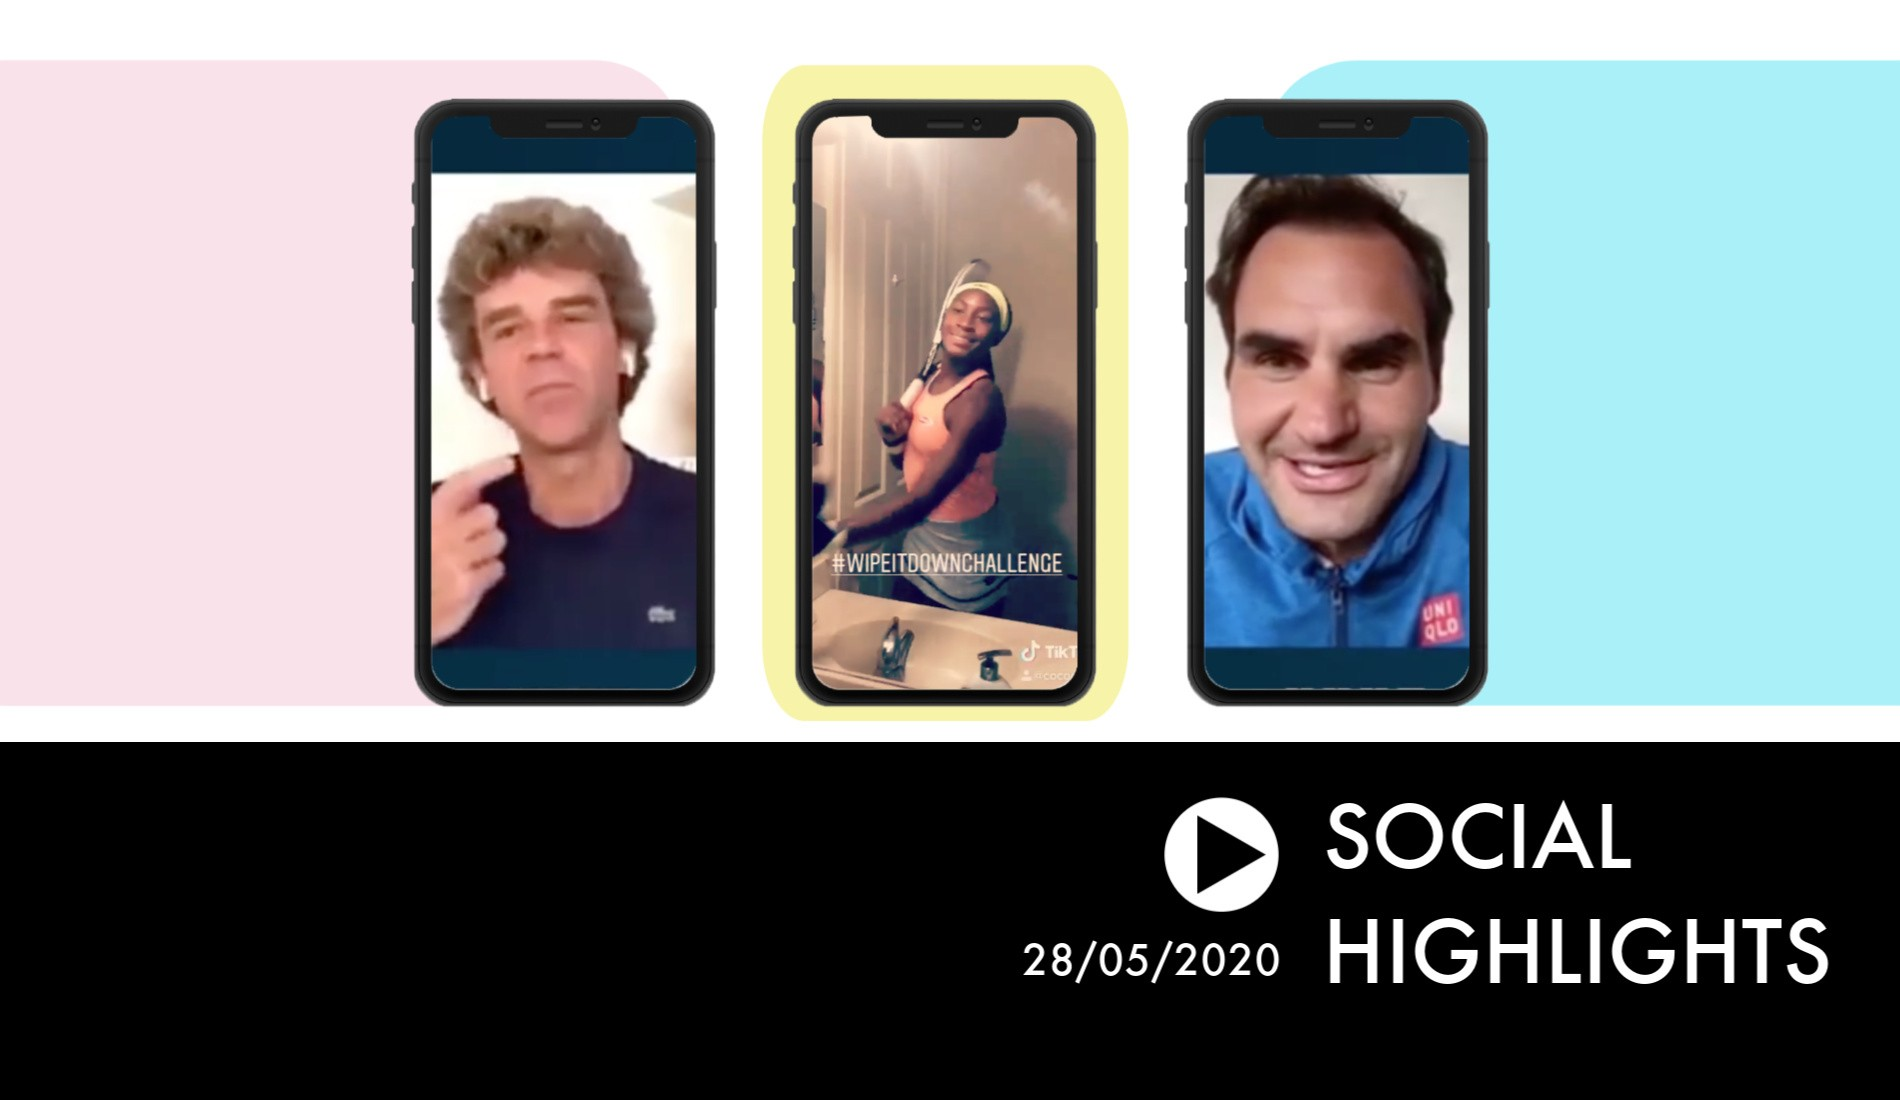 Kuerten to Federer: «Did you ever practice? It seems so easy!» - Social Highlights 28.05.20